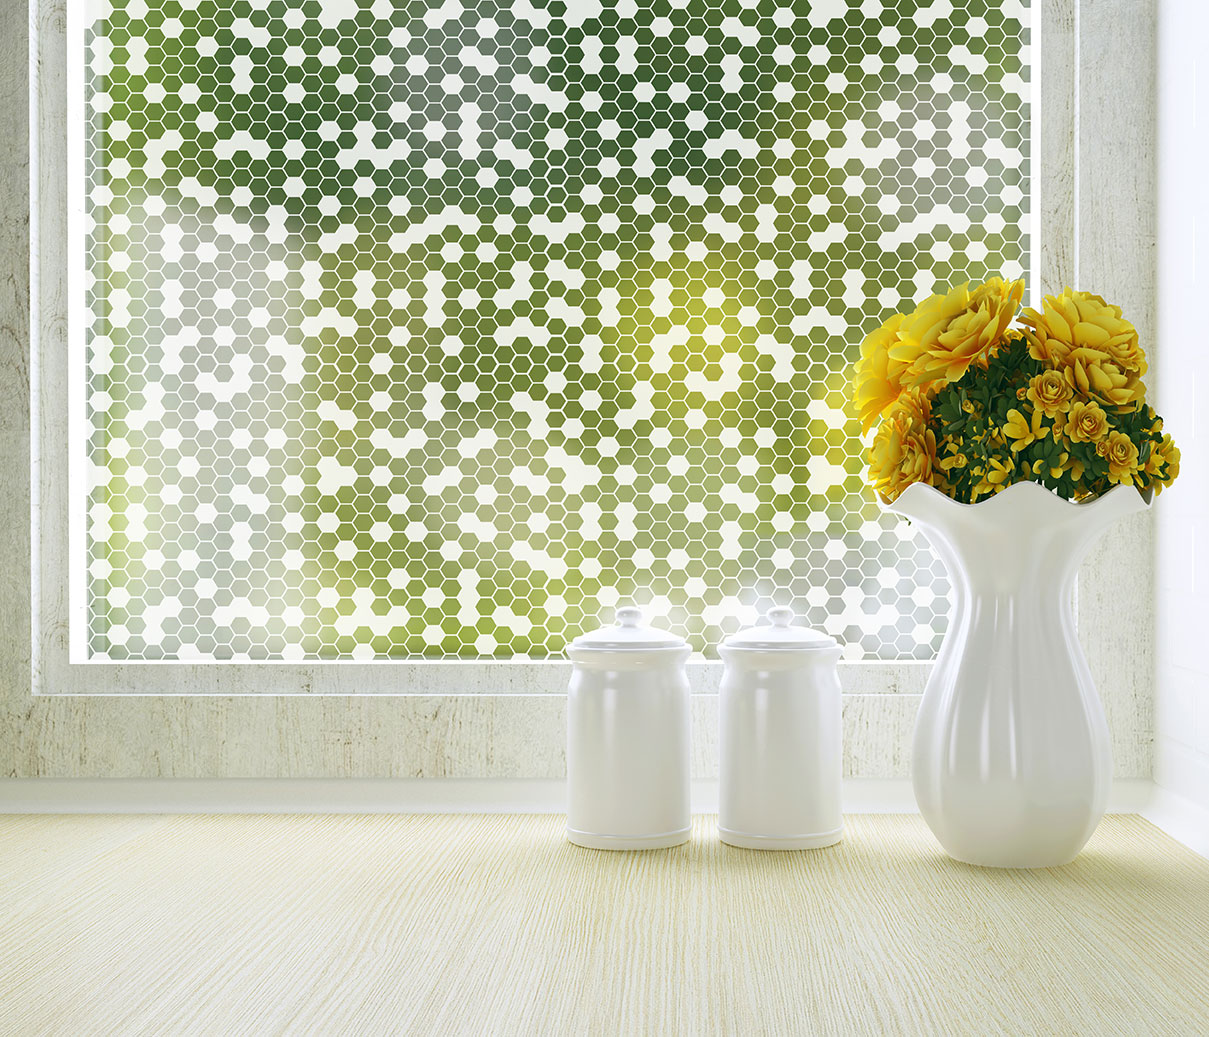 Bathroom Window Ideas For Privacy Honeycomb Modern Window Film Amp Decorative Film For